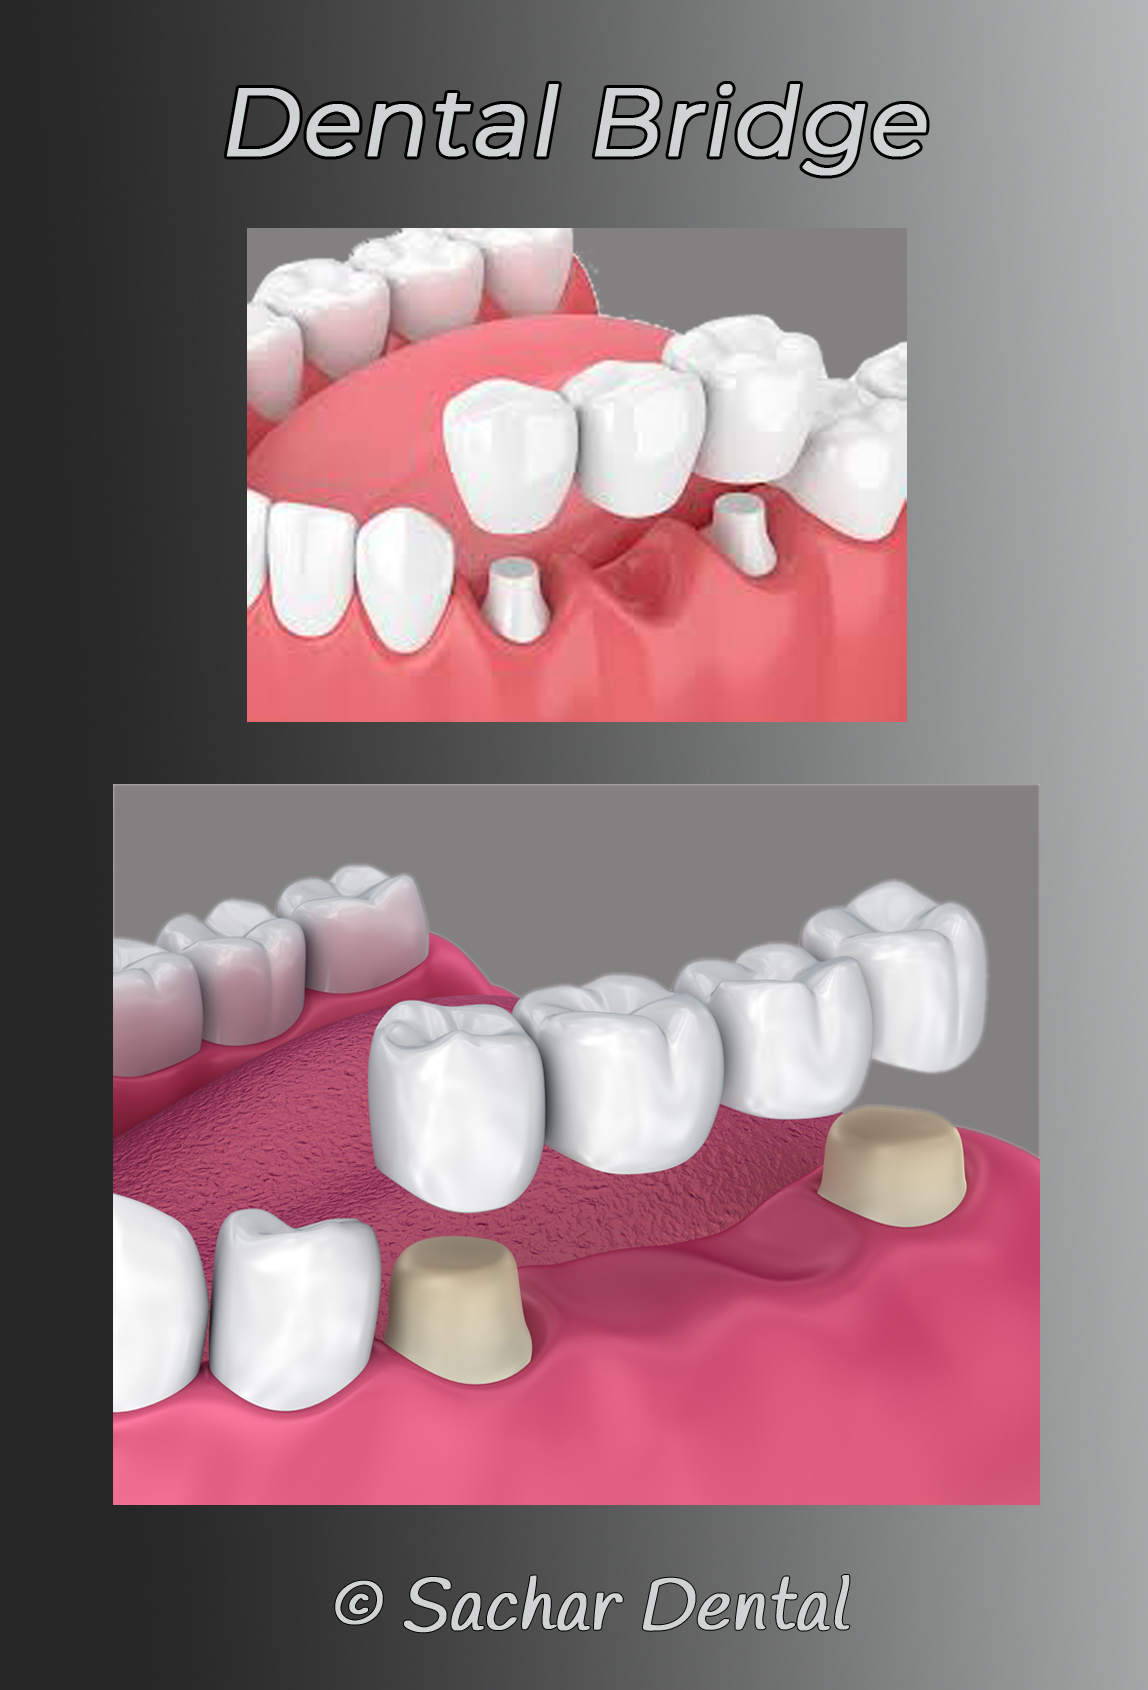 Picture of dental bridge for three teeth and for four teeth